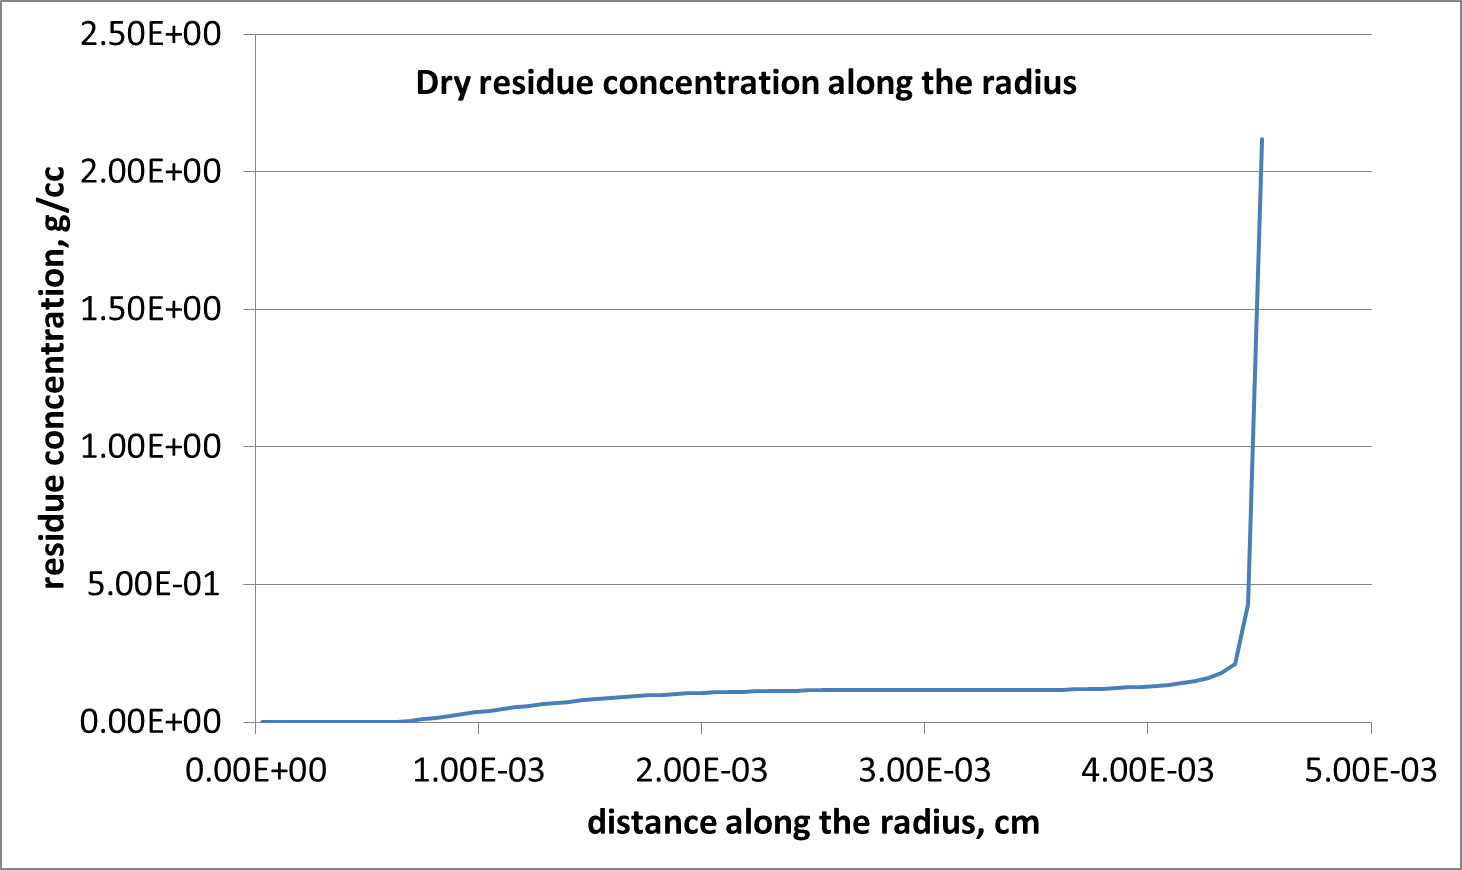 Predicted distribution dry residue